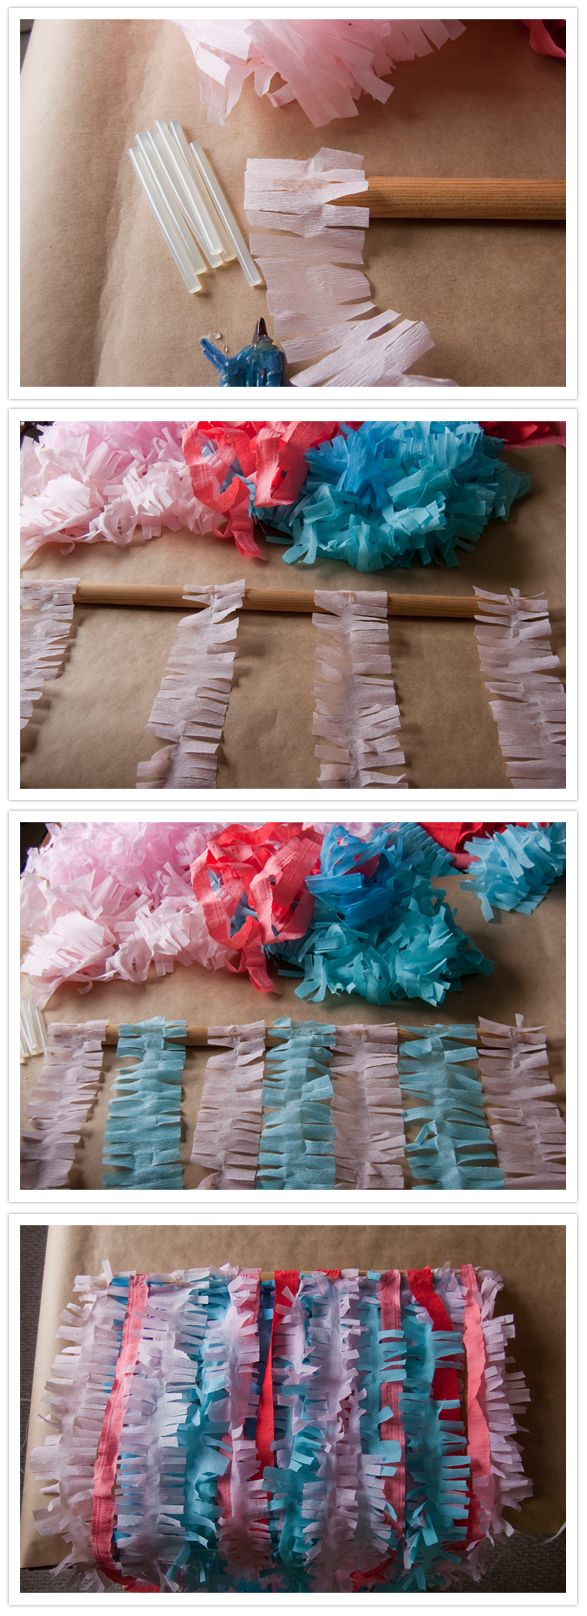 Streamer Backdrop...I wouldn't cut them like these due to possibility of ripping while transporting/hanging